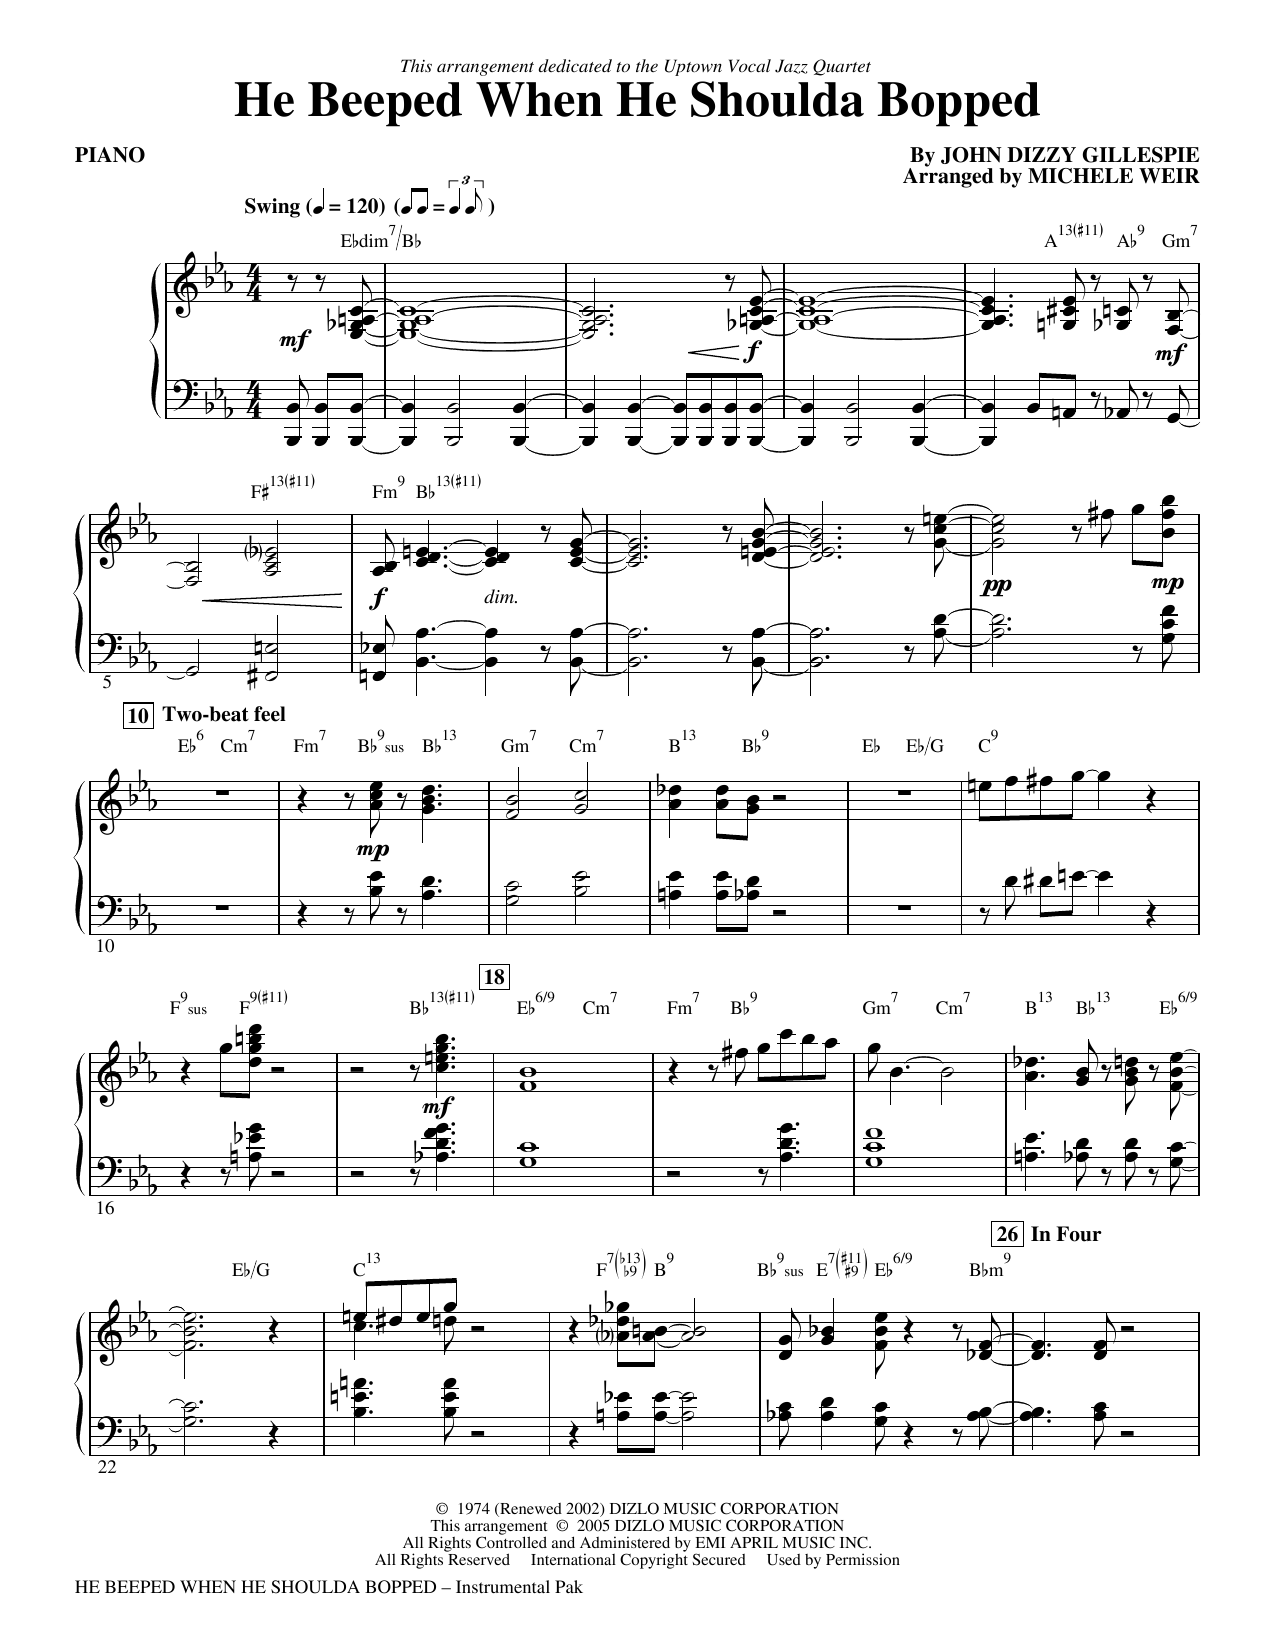 He Beeped When He Shoulda Bopped (arr. Michele Weir) - Piano Sheet Music